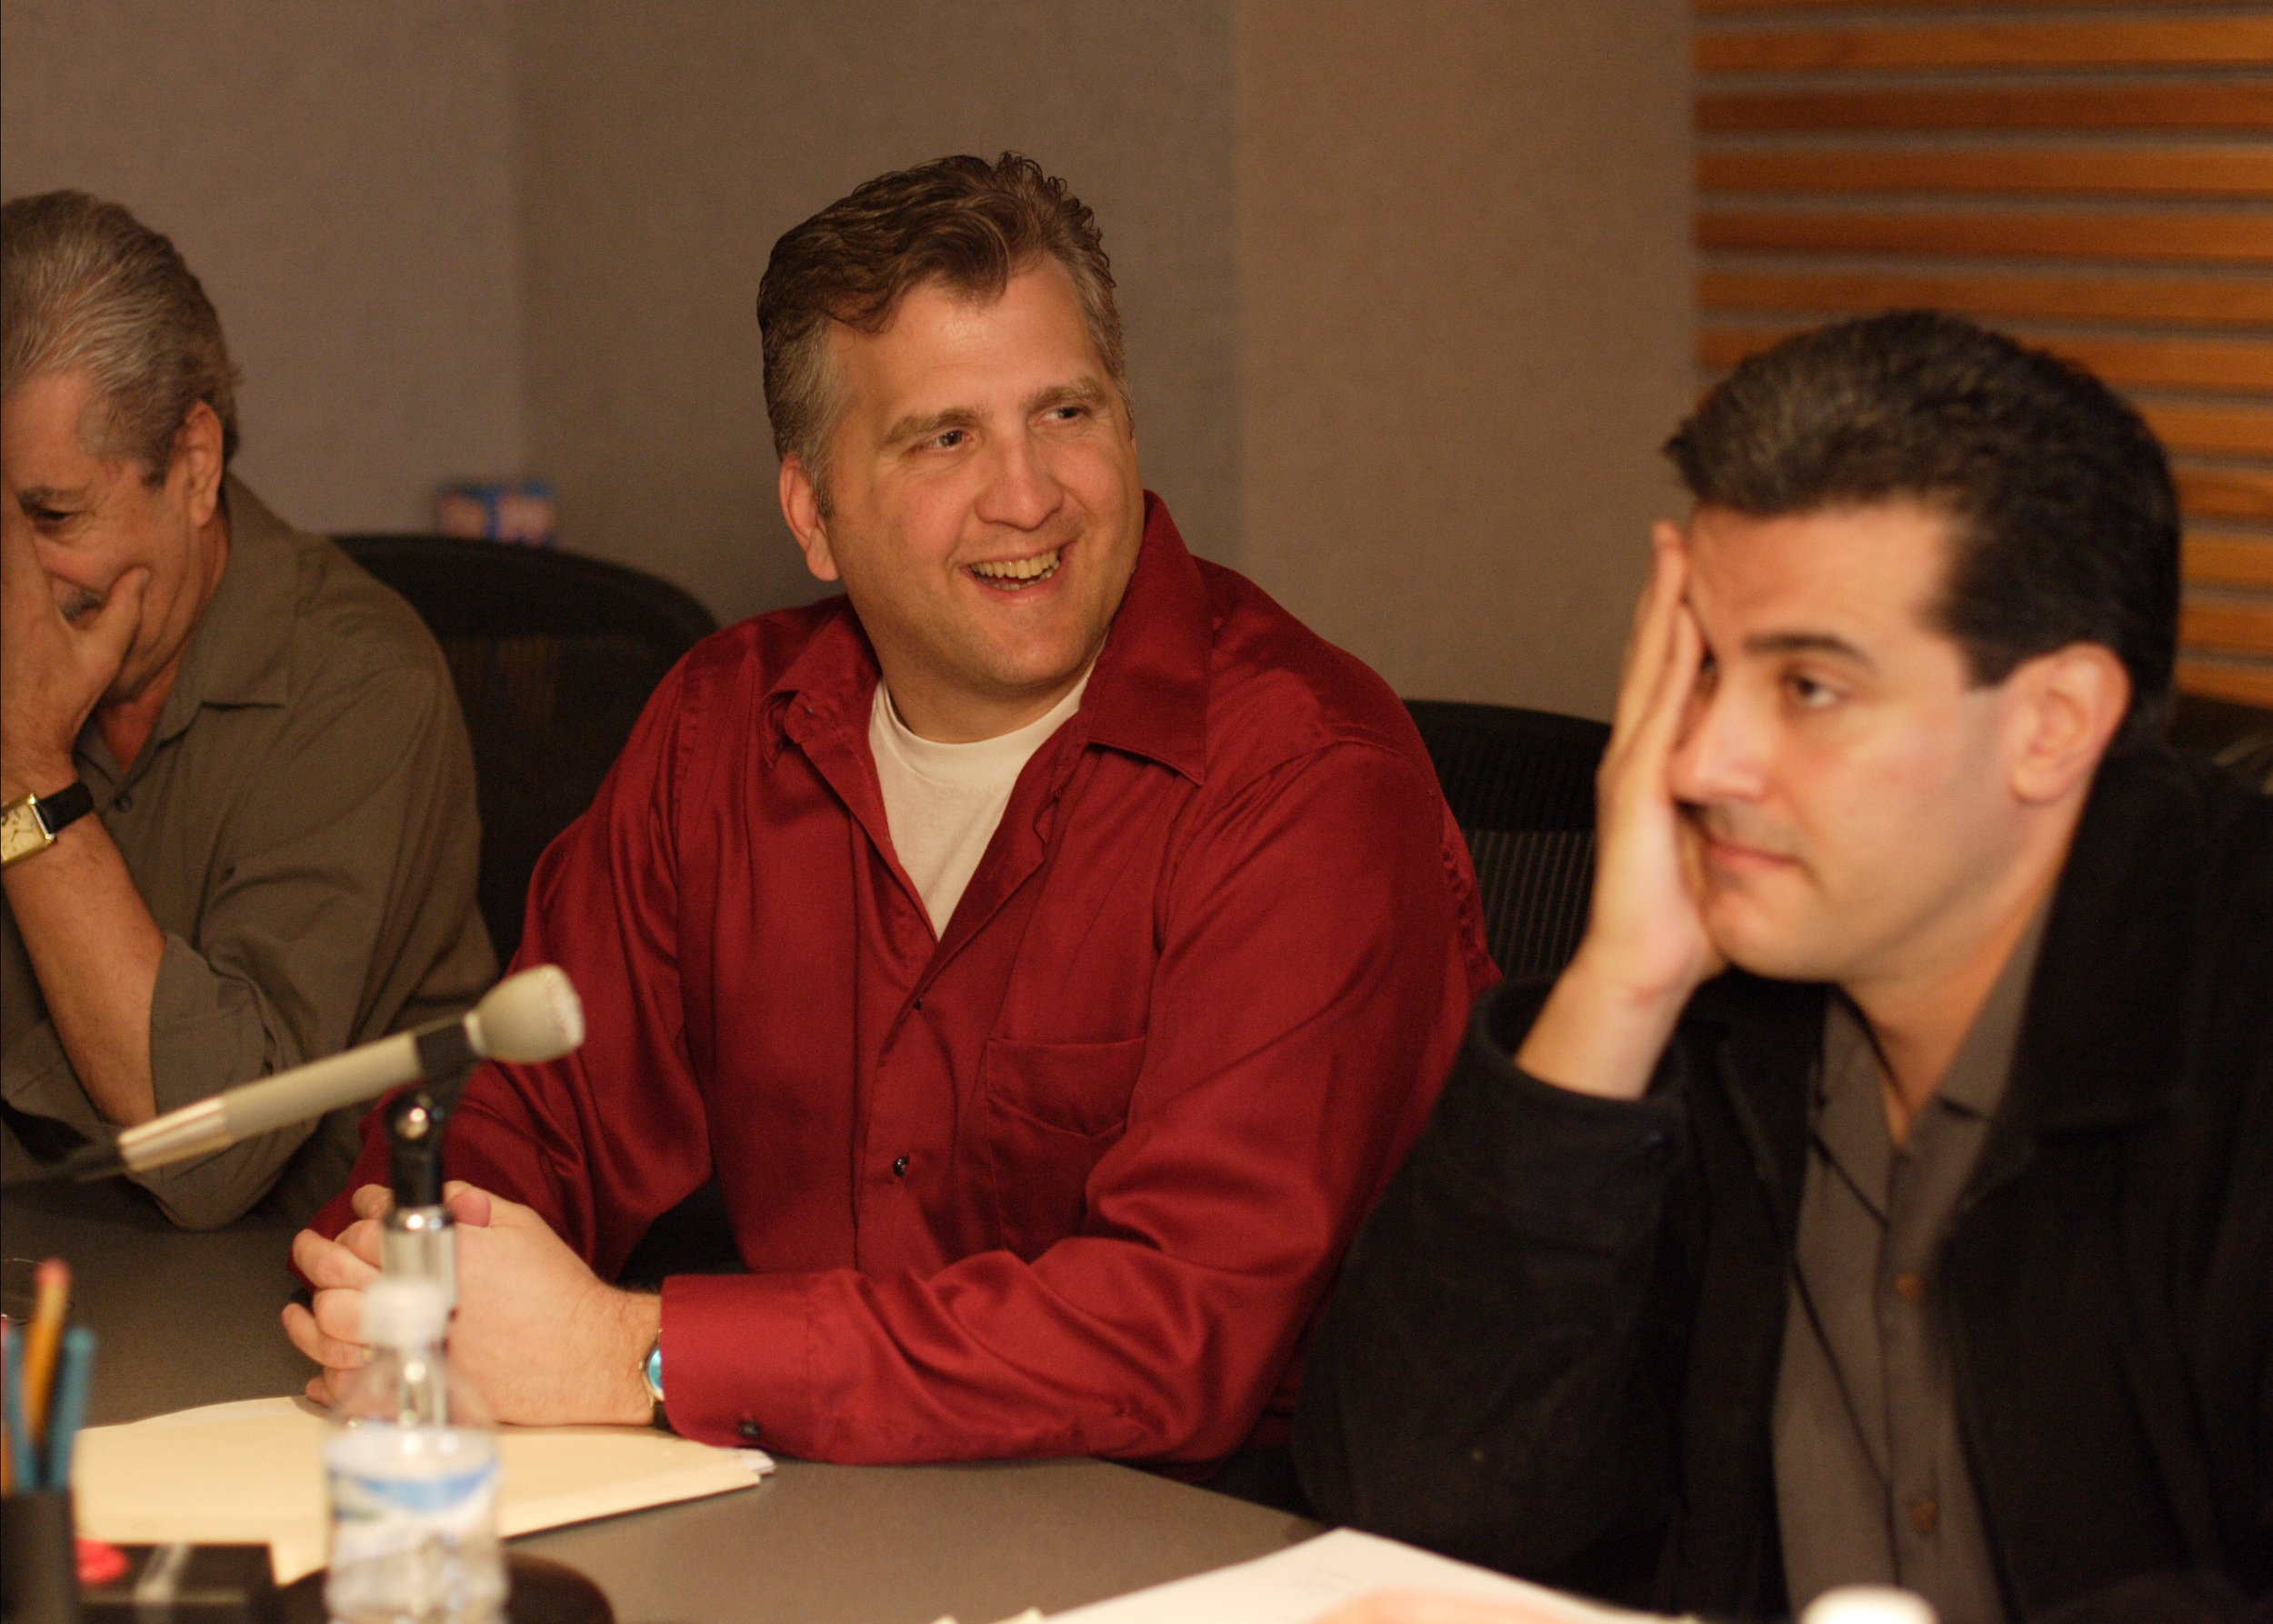 Daniel Roebuck smiles listening to his record as head elf, Paul Rocco, while Robert Zappia (Writer, Director, Producer) listens in frustration. All in good fun, of course, as this was a bit recorded for the Dan Roebuck - Method Actor video.